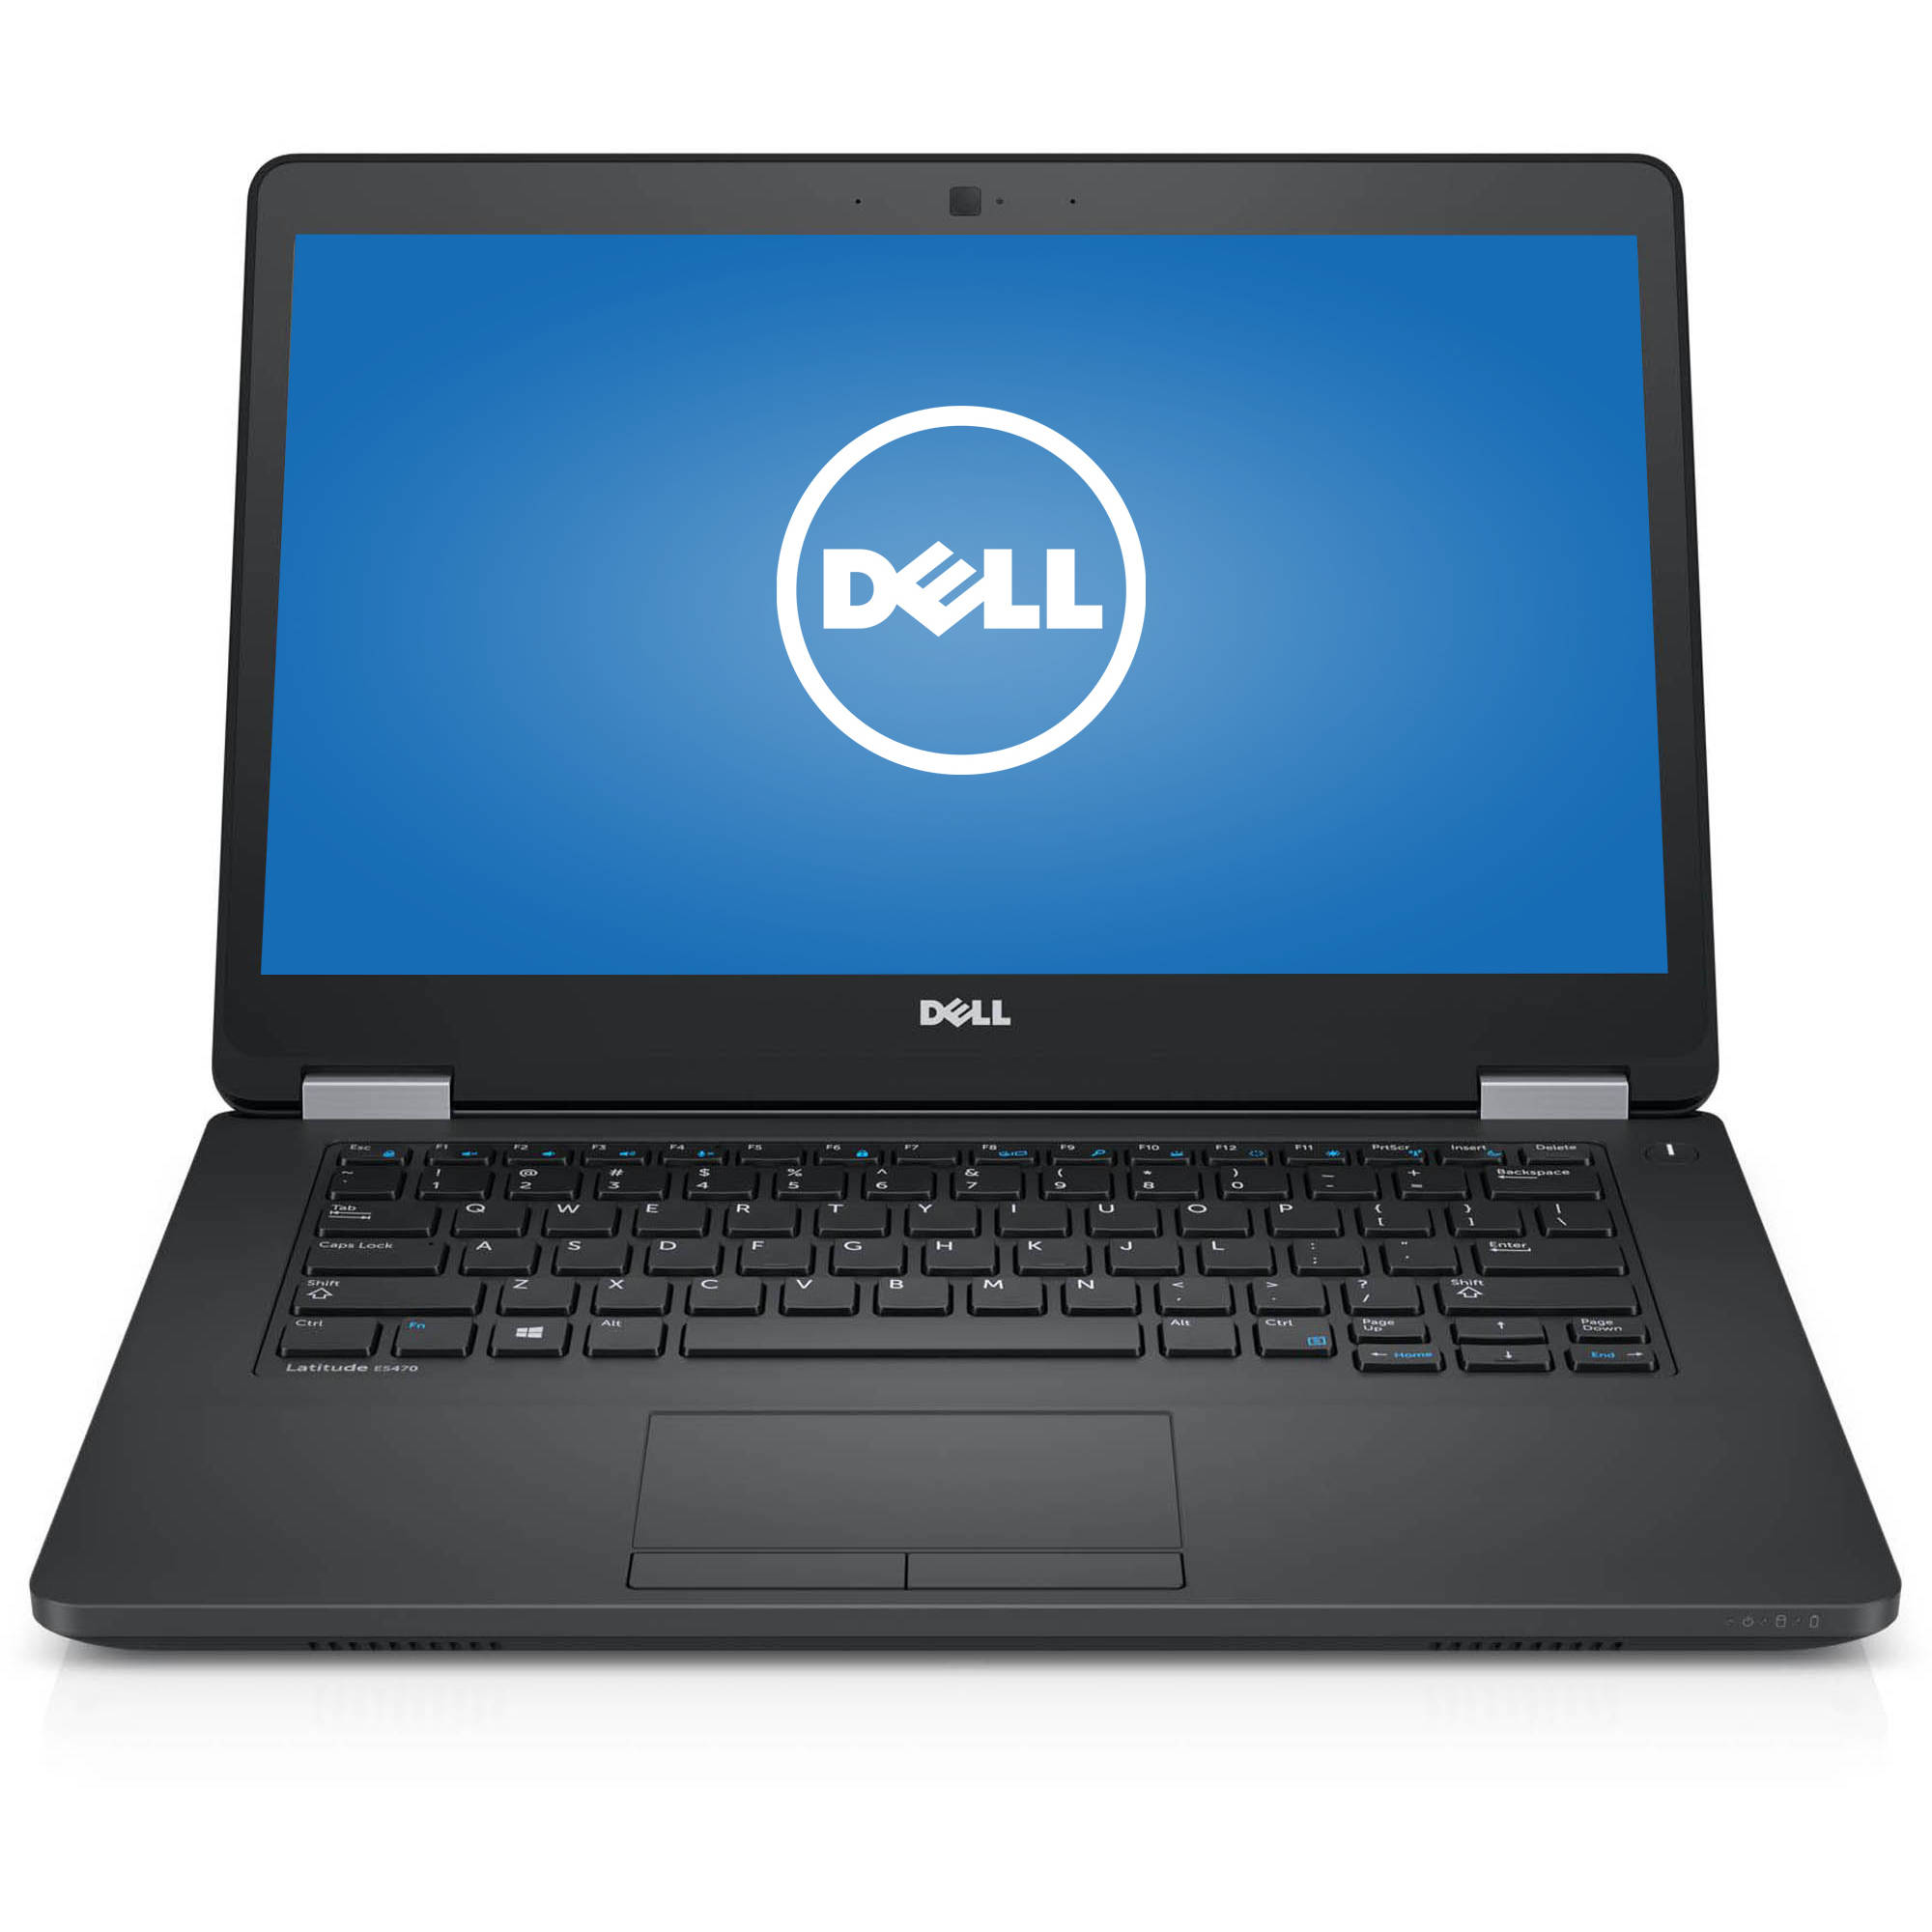 "Dell Latitude 14"" Laptop, Windows 10 Pro, Intel Core i5-6300U Processor, 8GB RAM, 500GB Hard Drive"